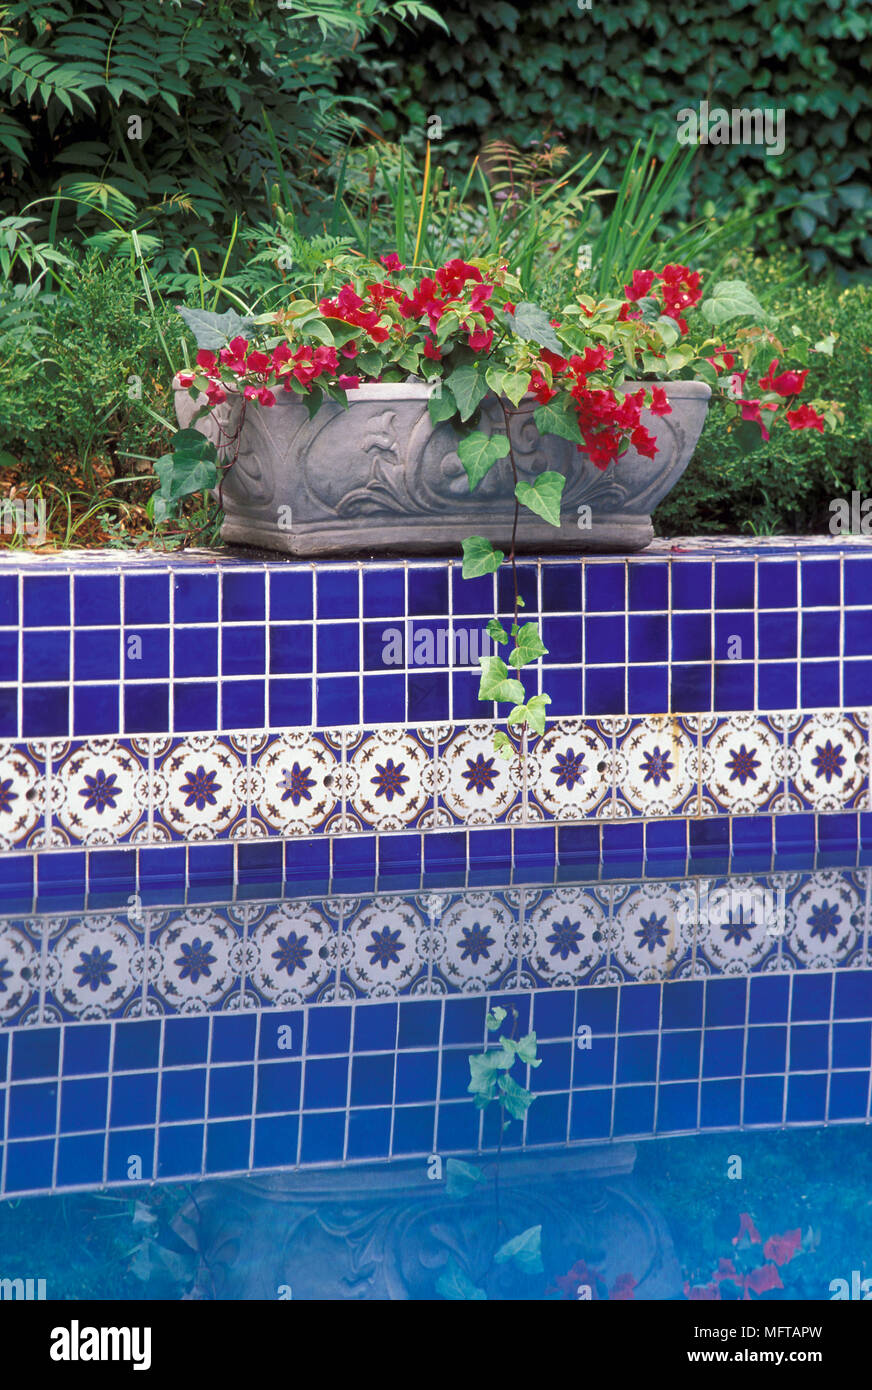 decor pool dsc graceful tile renovation things decorative all tiles